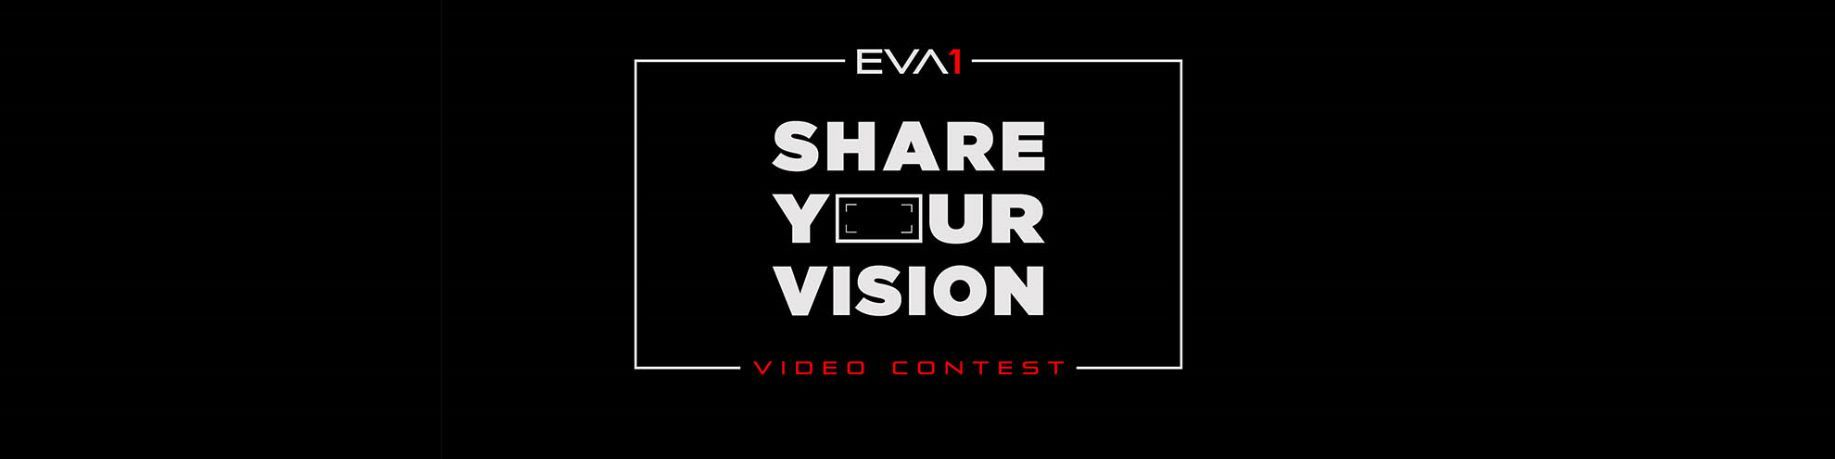 Panasonic EVA1 Share Your Vision Video Contest